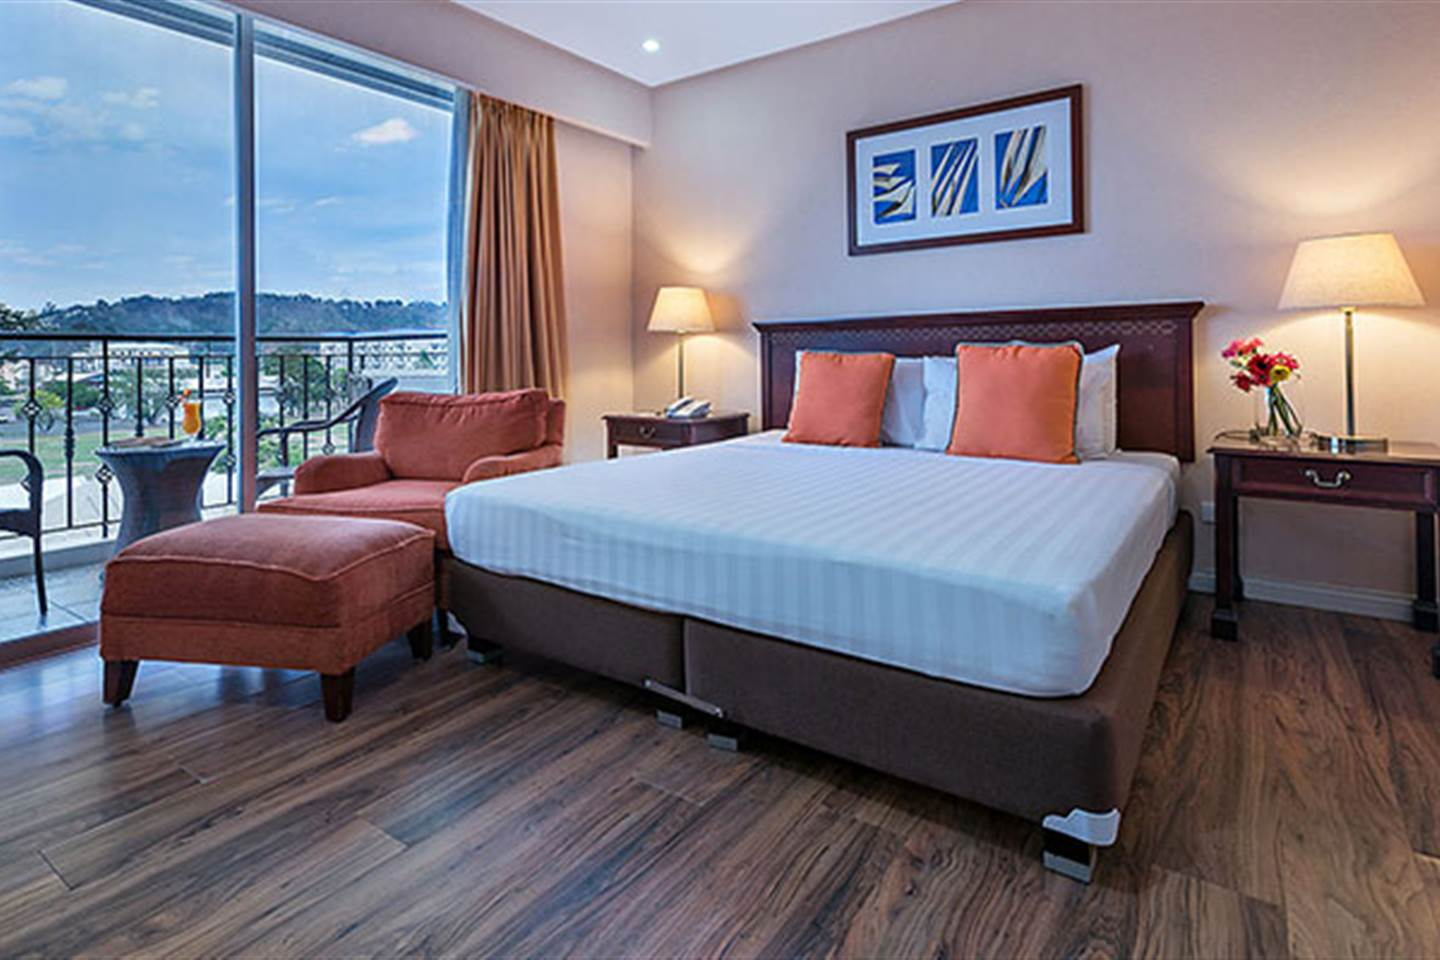 Super Deluxe Room w/ Veranda 1